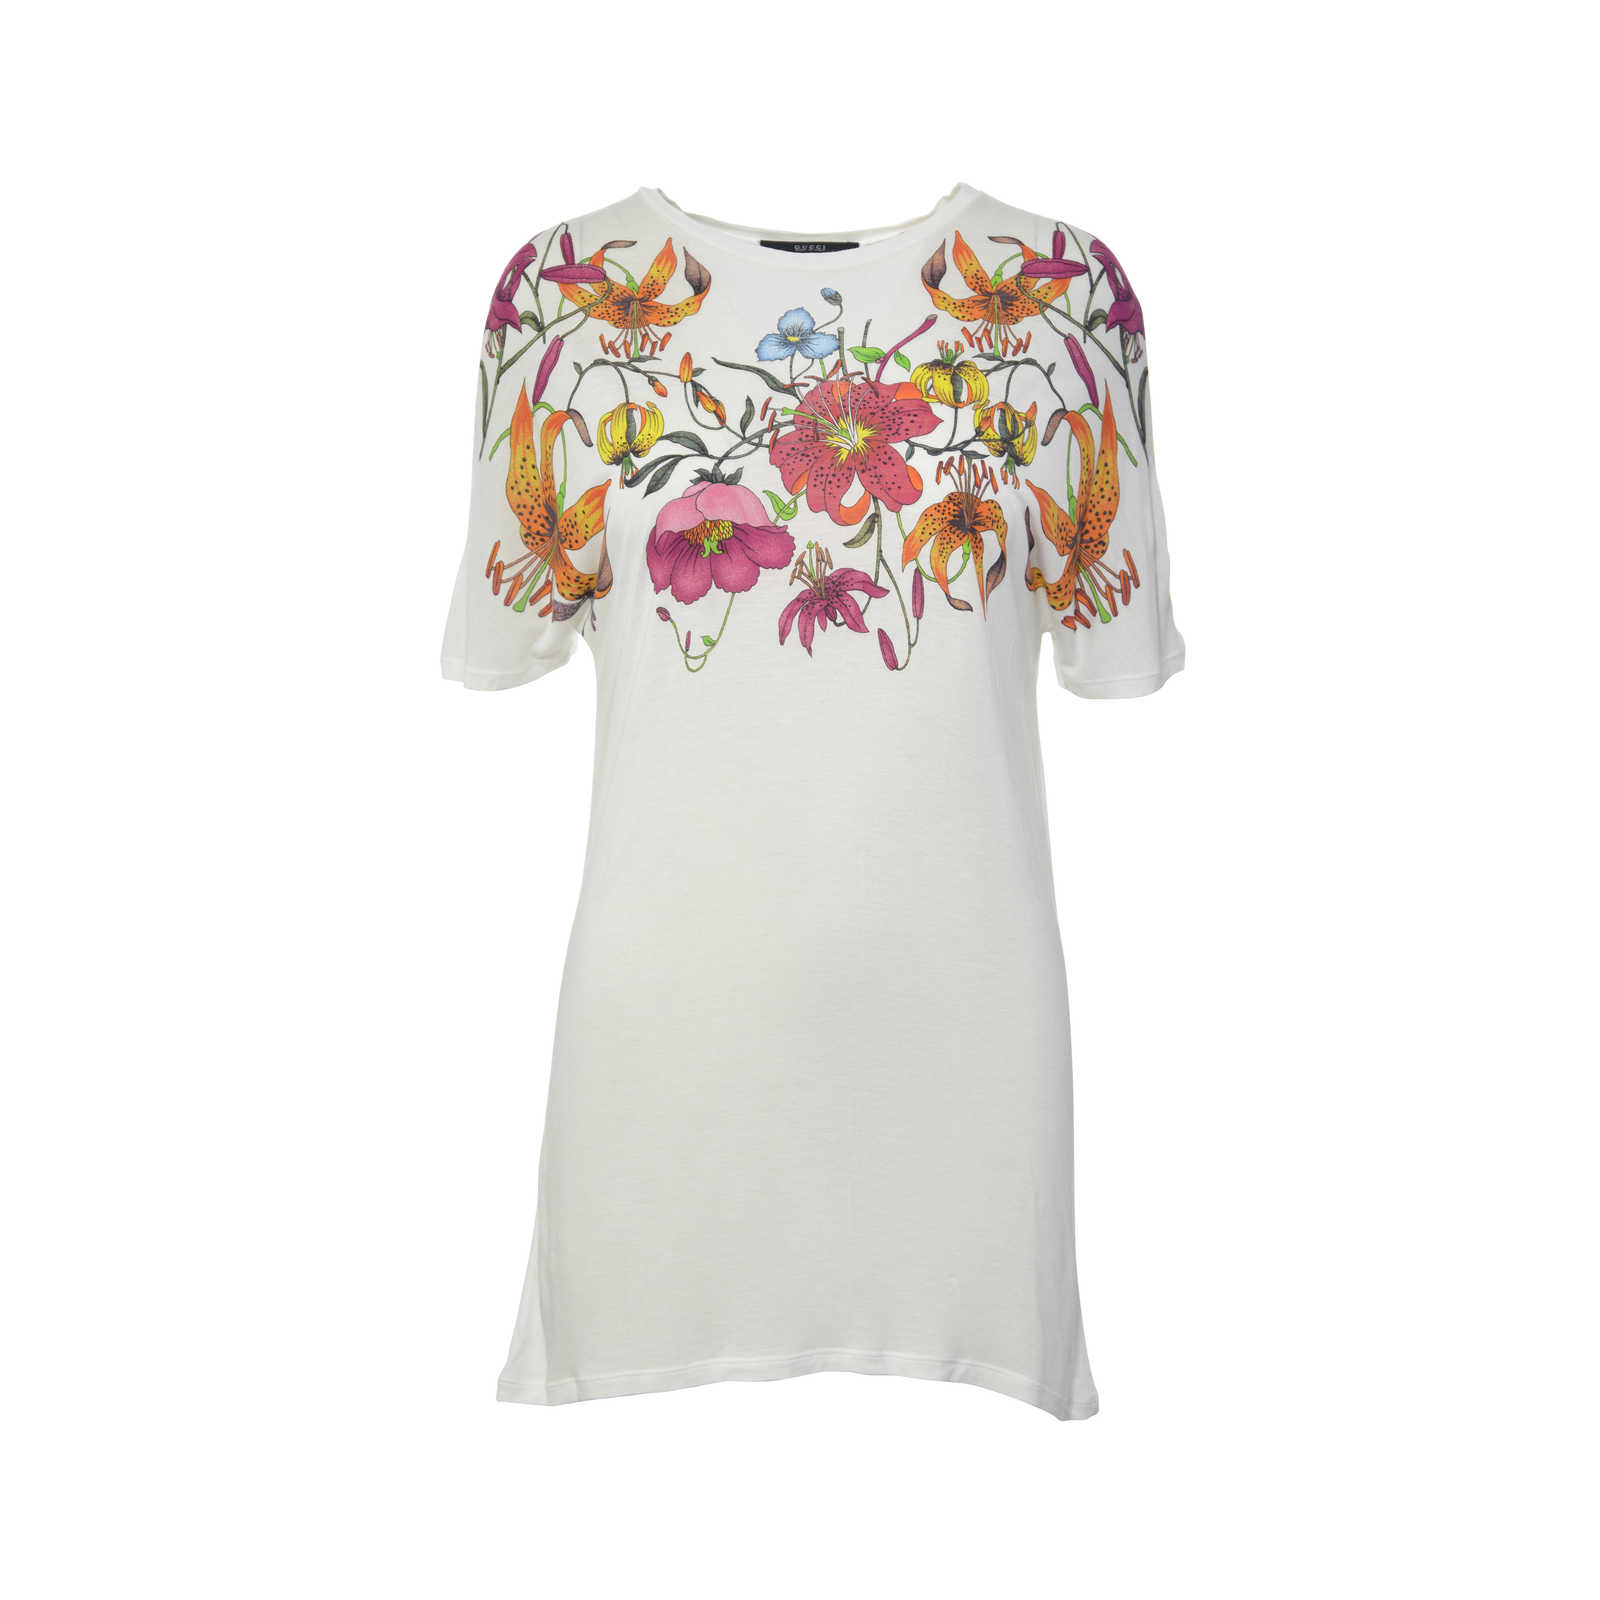 8b790b2d3 Authentic Second Hand Gucci Floral Print T-Shirt (PSS-240-00136) .